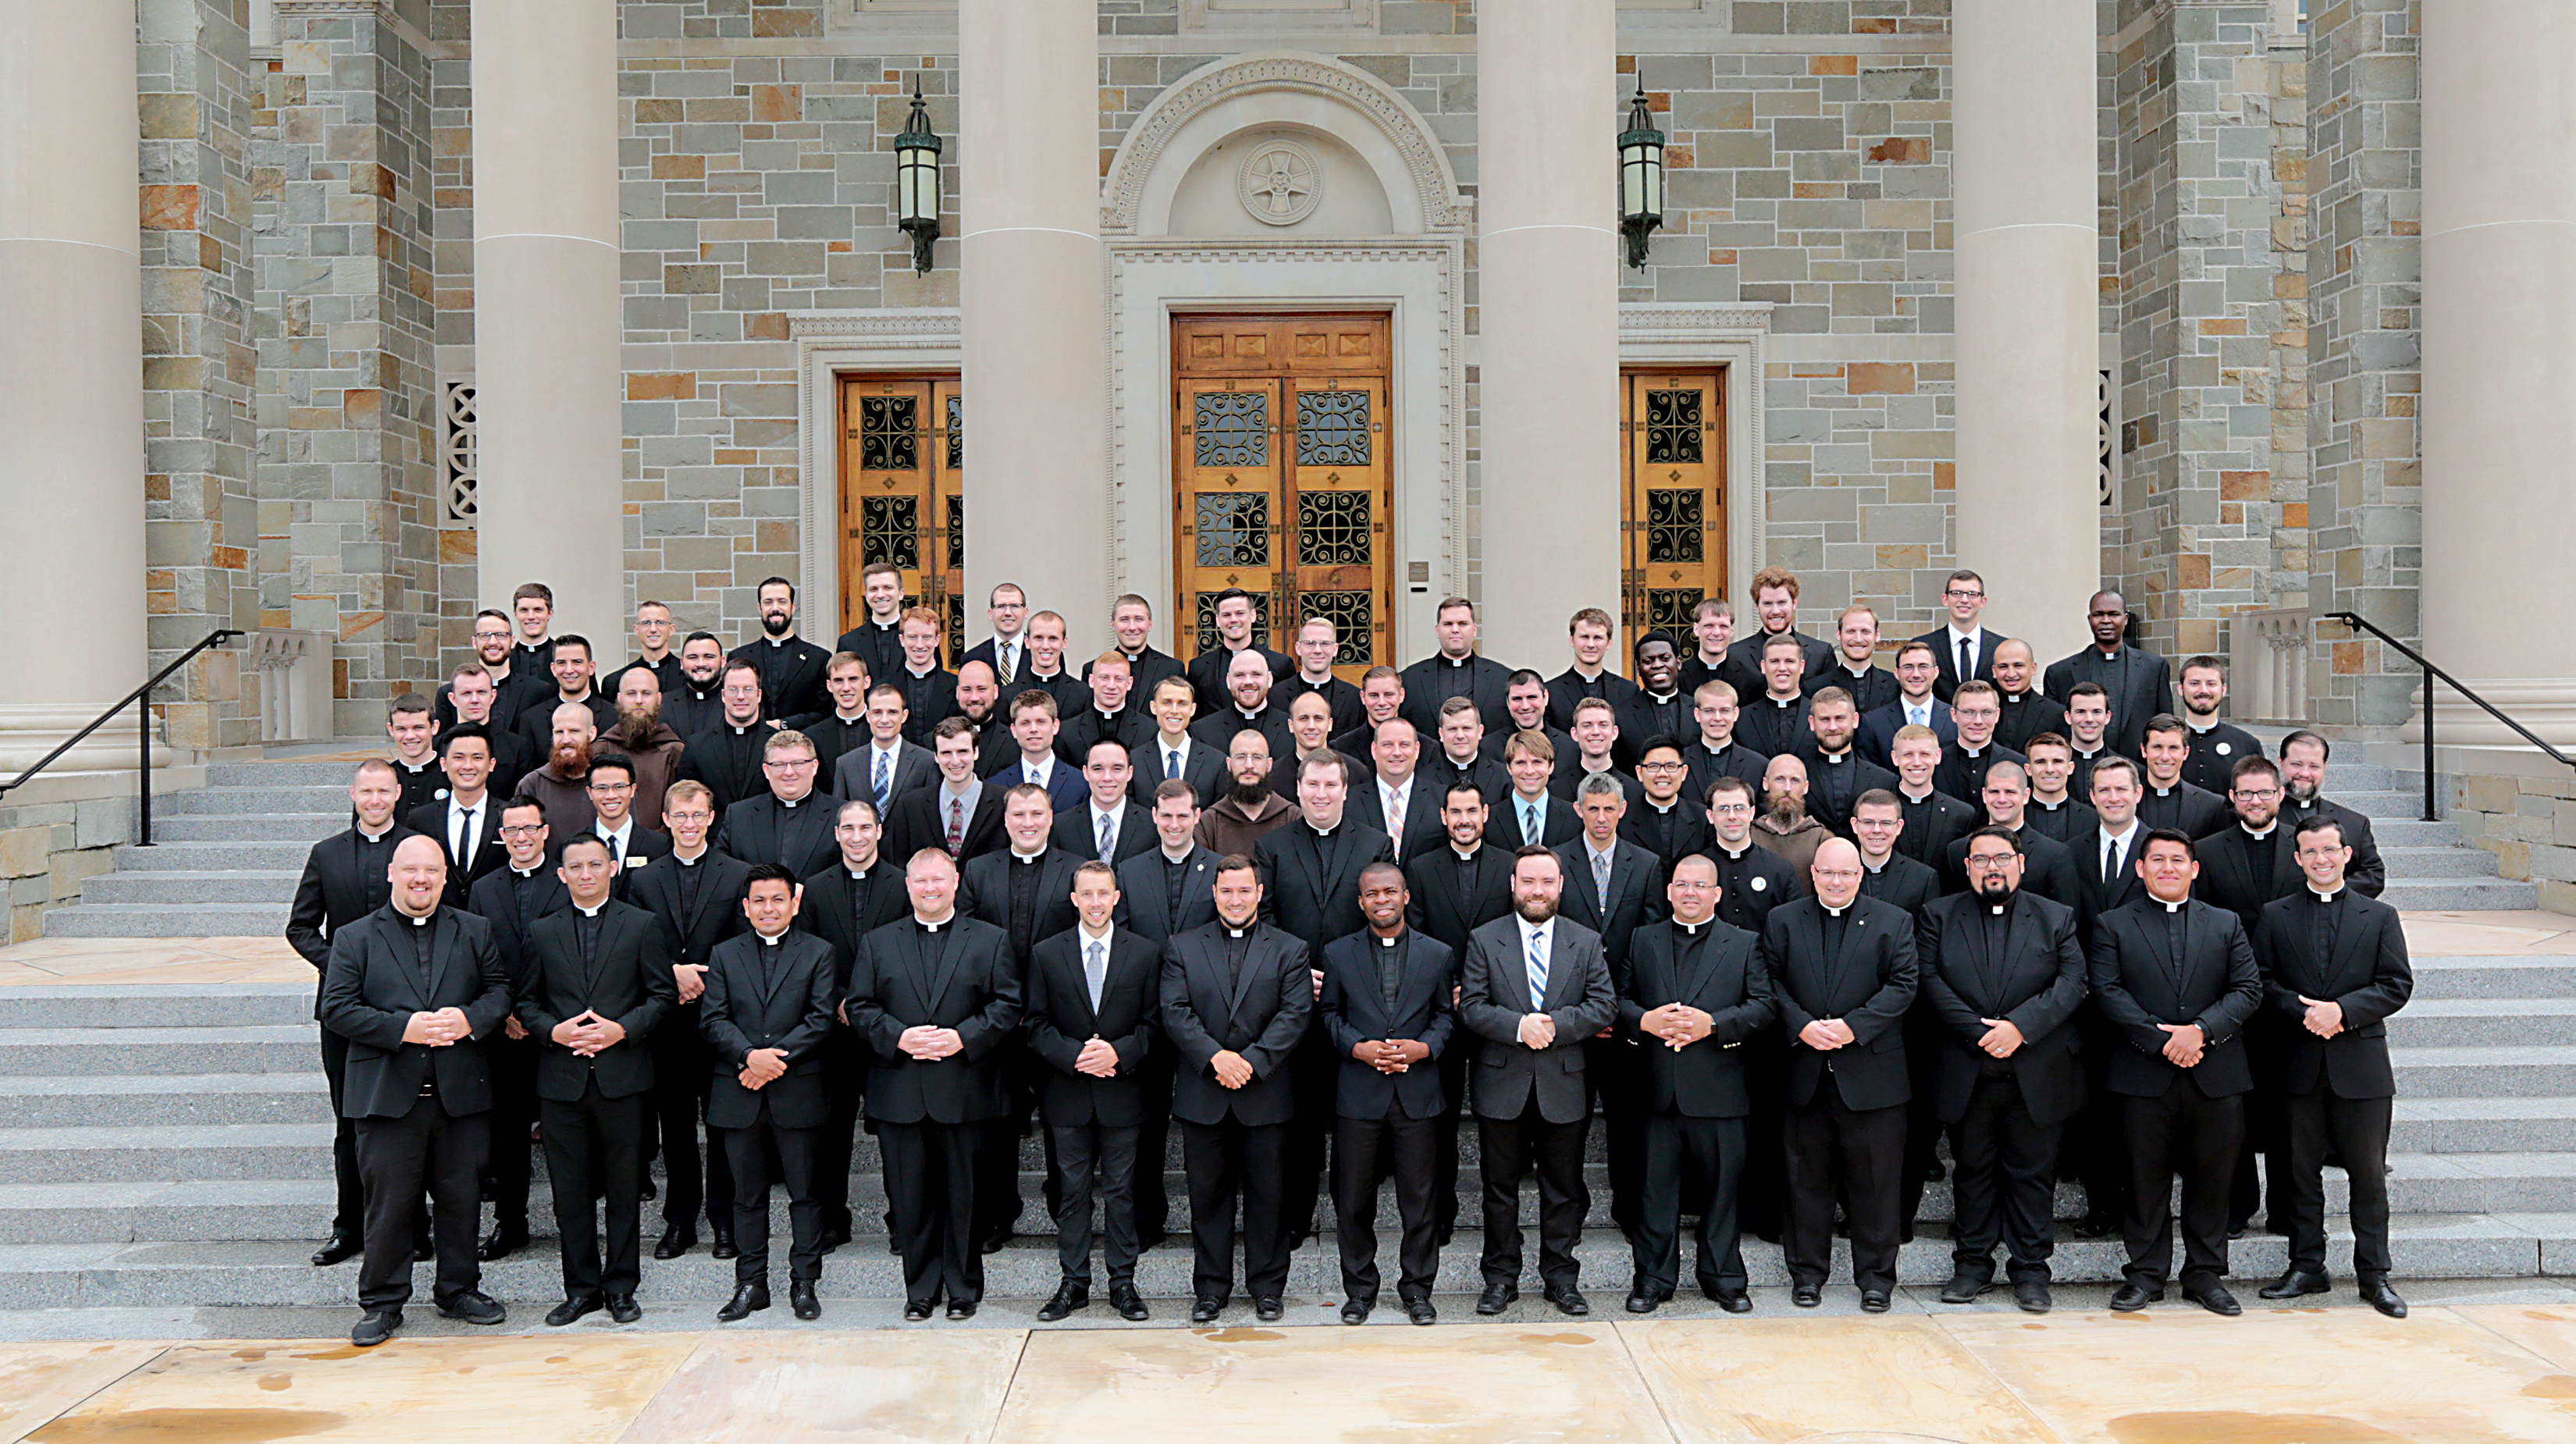 Seminarians posed for a picture on their first day of class for the 2019-2020 academic year. (CT Photo/EL Hubbard)